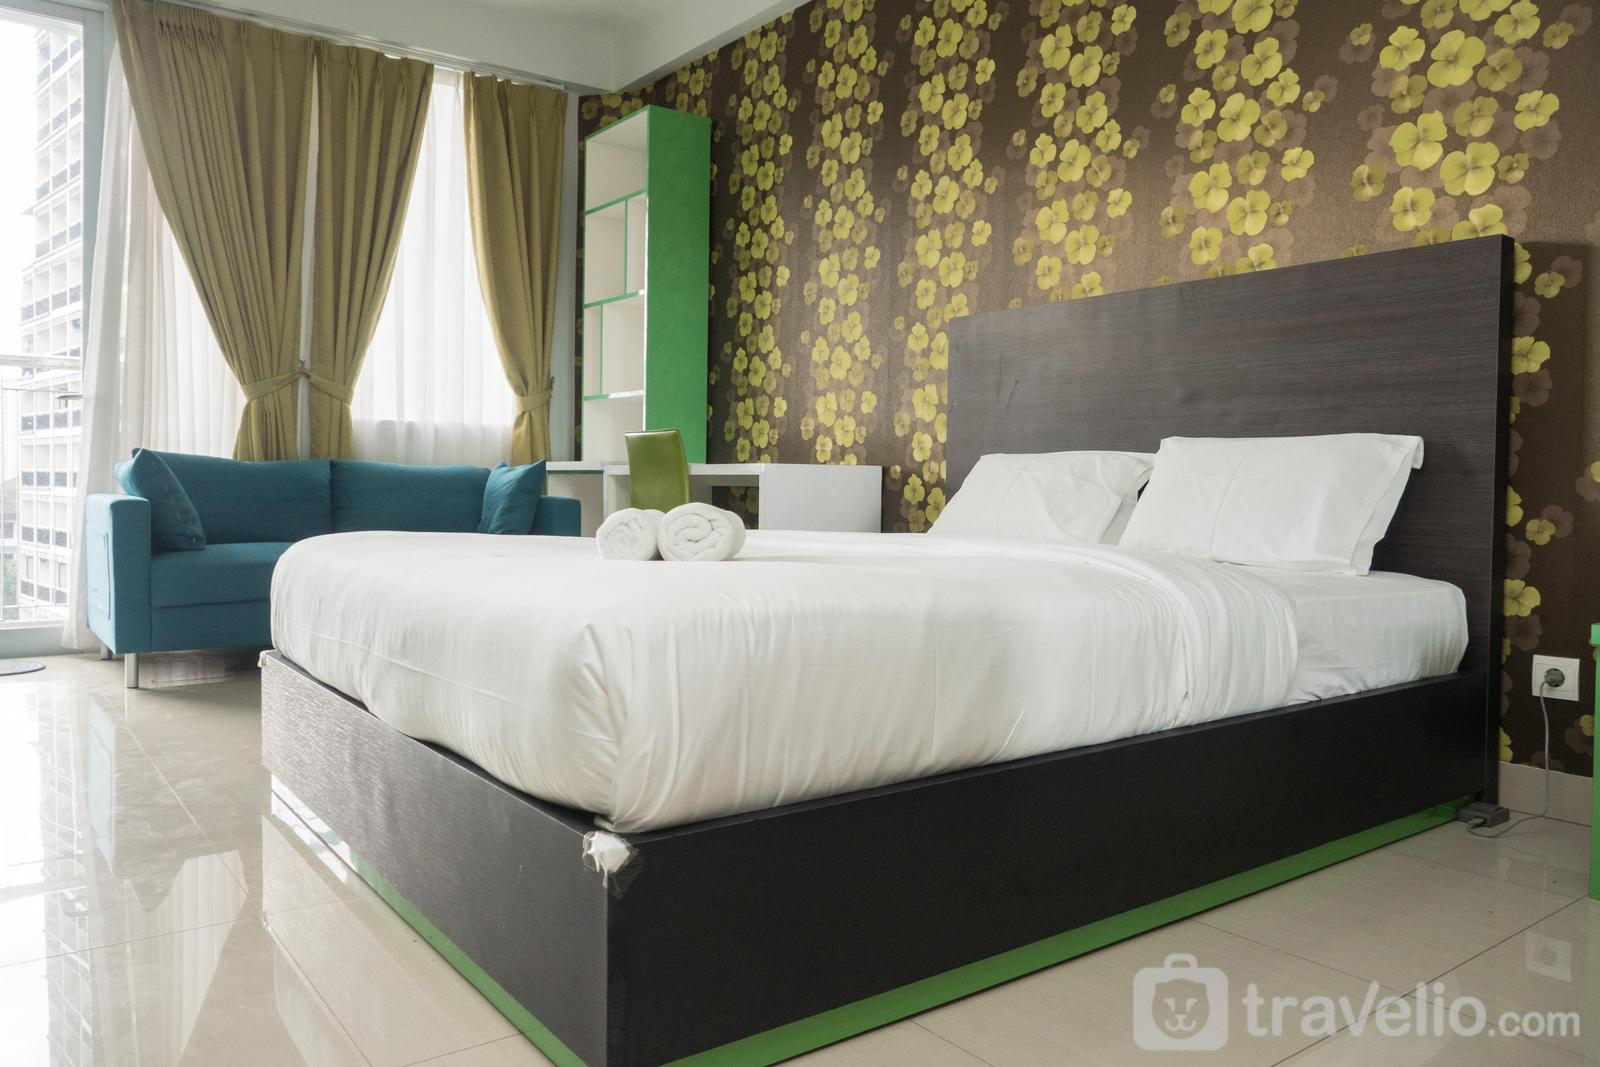 Dago Suites Apartment - Studio Room at Dago Suites Apartment near ITB By Travelio